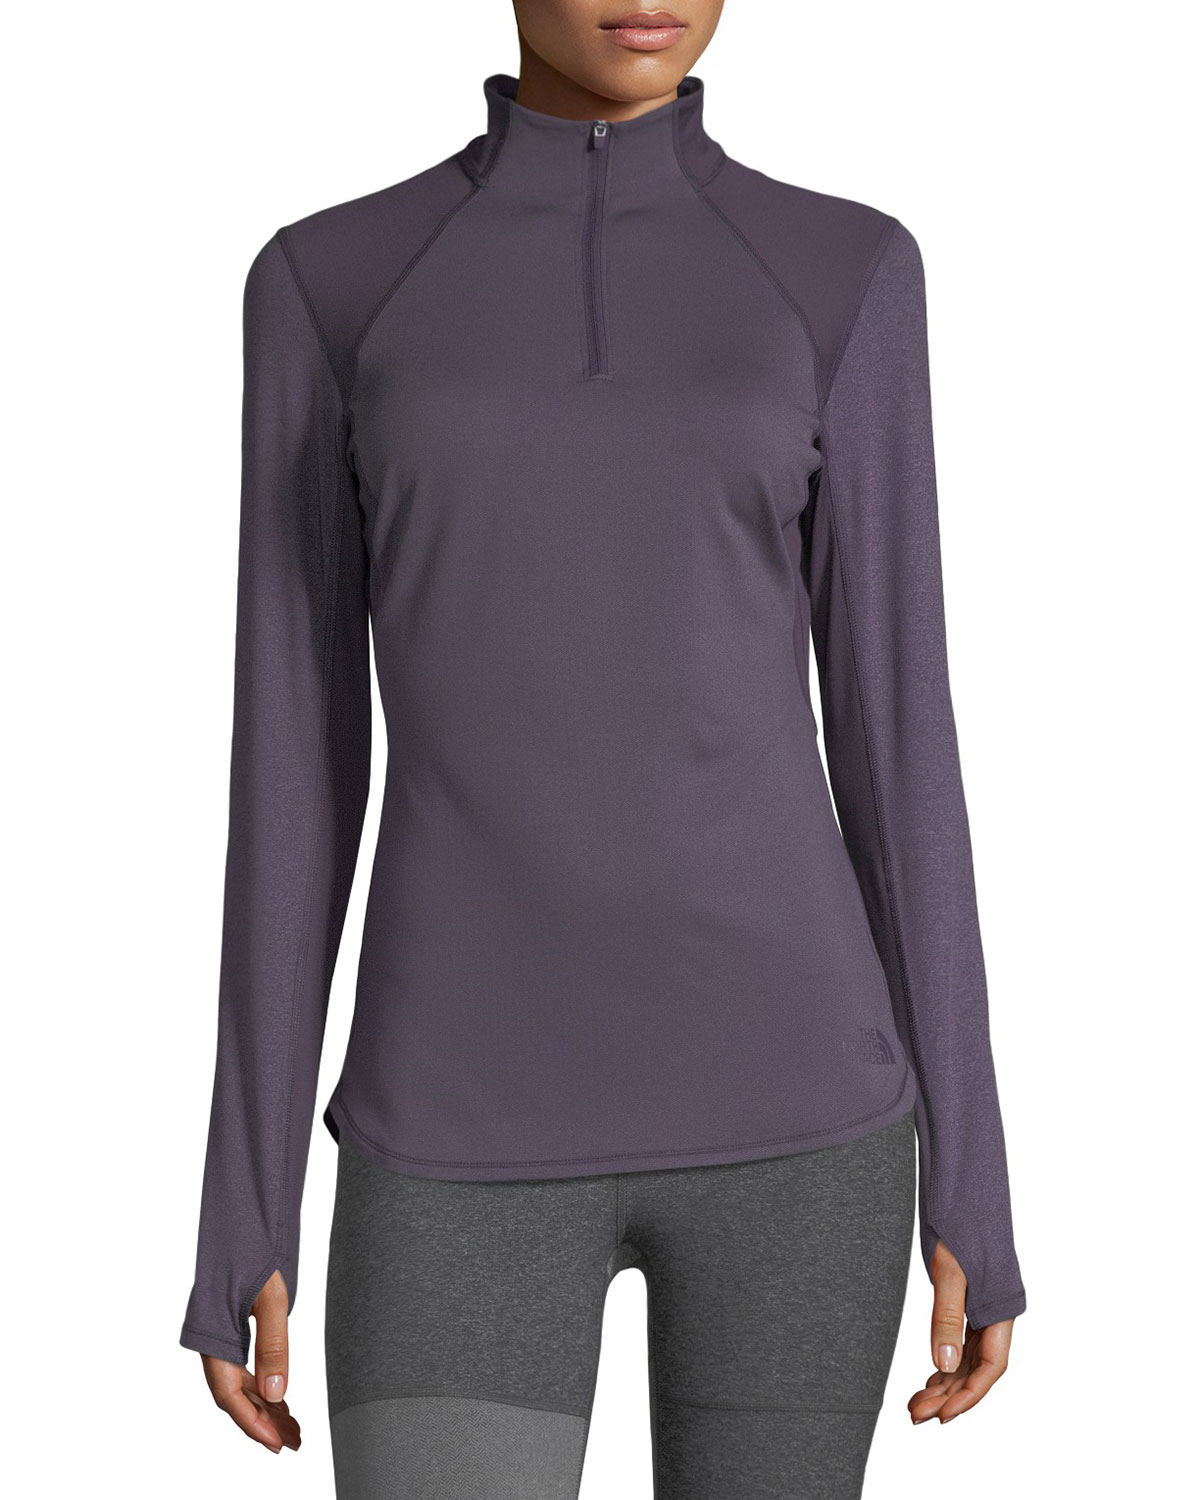 The North Face Motivation 1 / 4 - Zip Performance Pullover Jacket